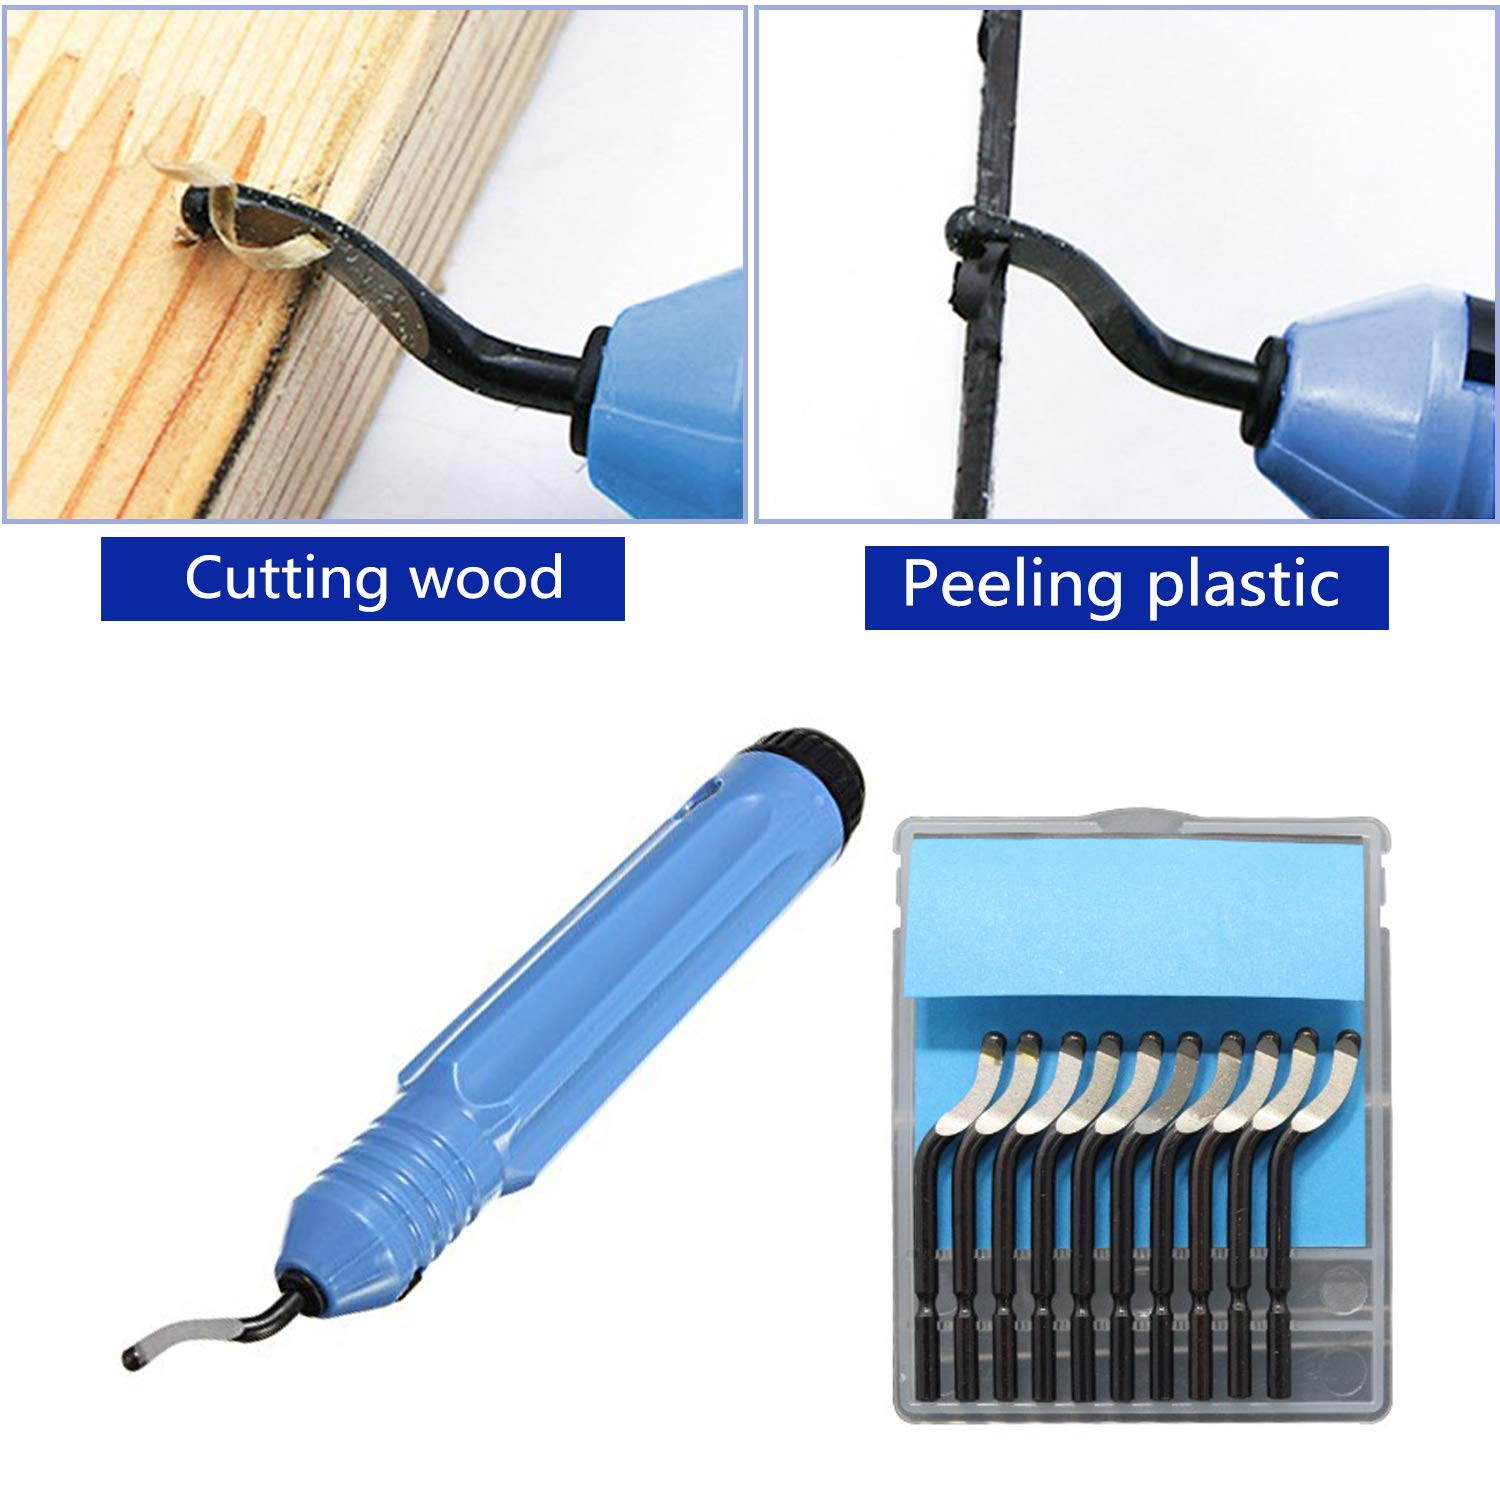 360 Degree Rotary Design of Deburring Blades Wood Steel Deburring Tool Kit 1 Piece With Blade Handle +10 Pieces of Deburring Blades Copper and Aluminum for Plastics